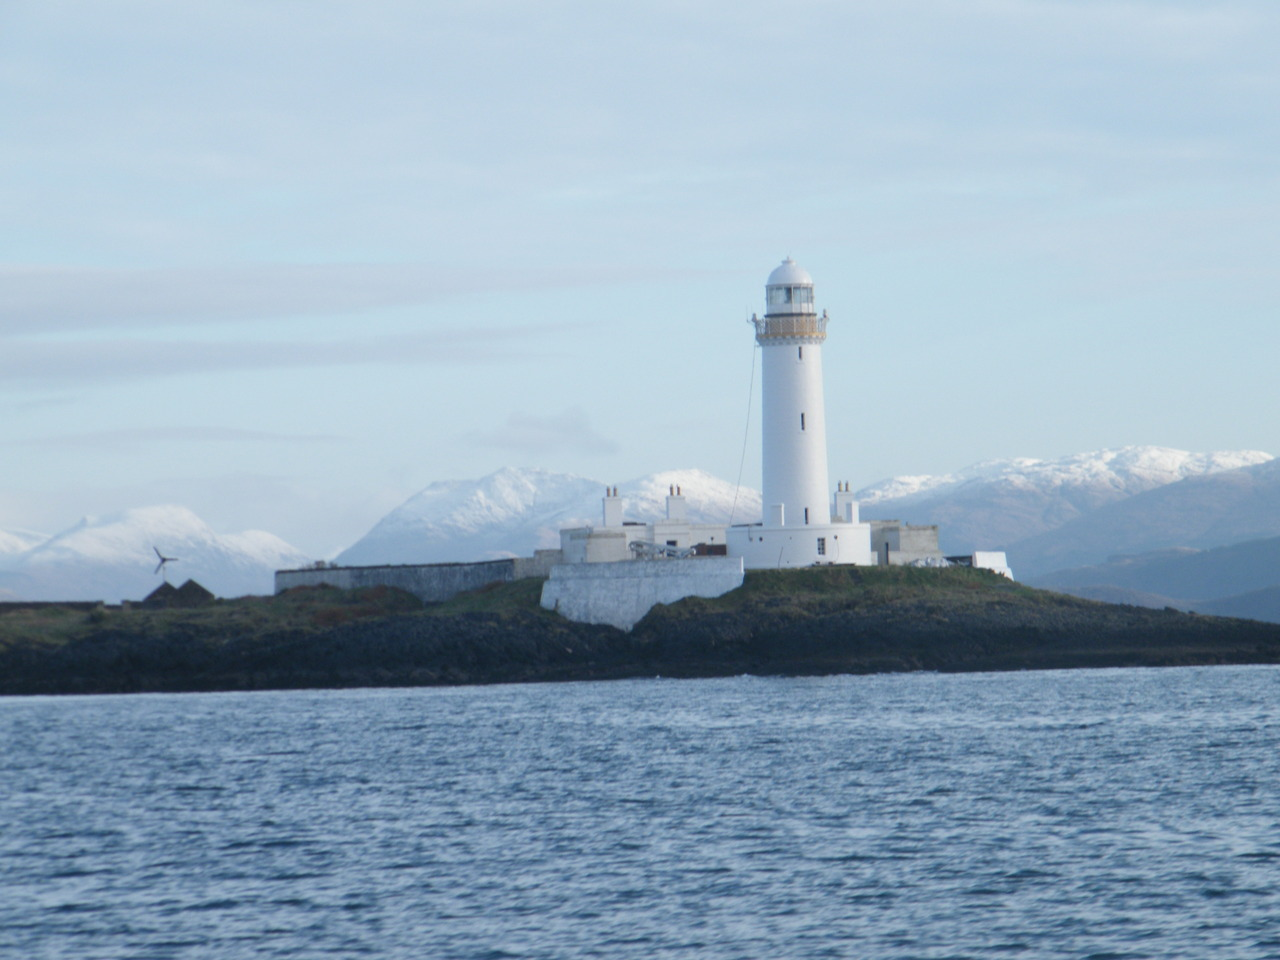 Lismore Lighthouse with snow capped mountains